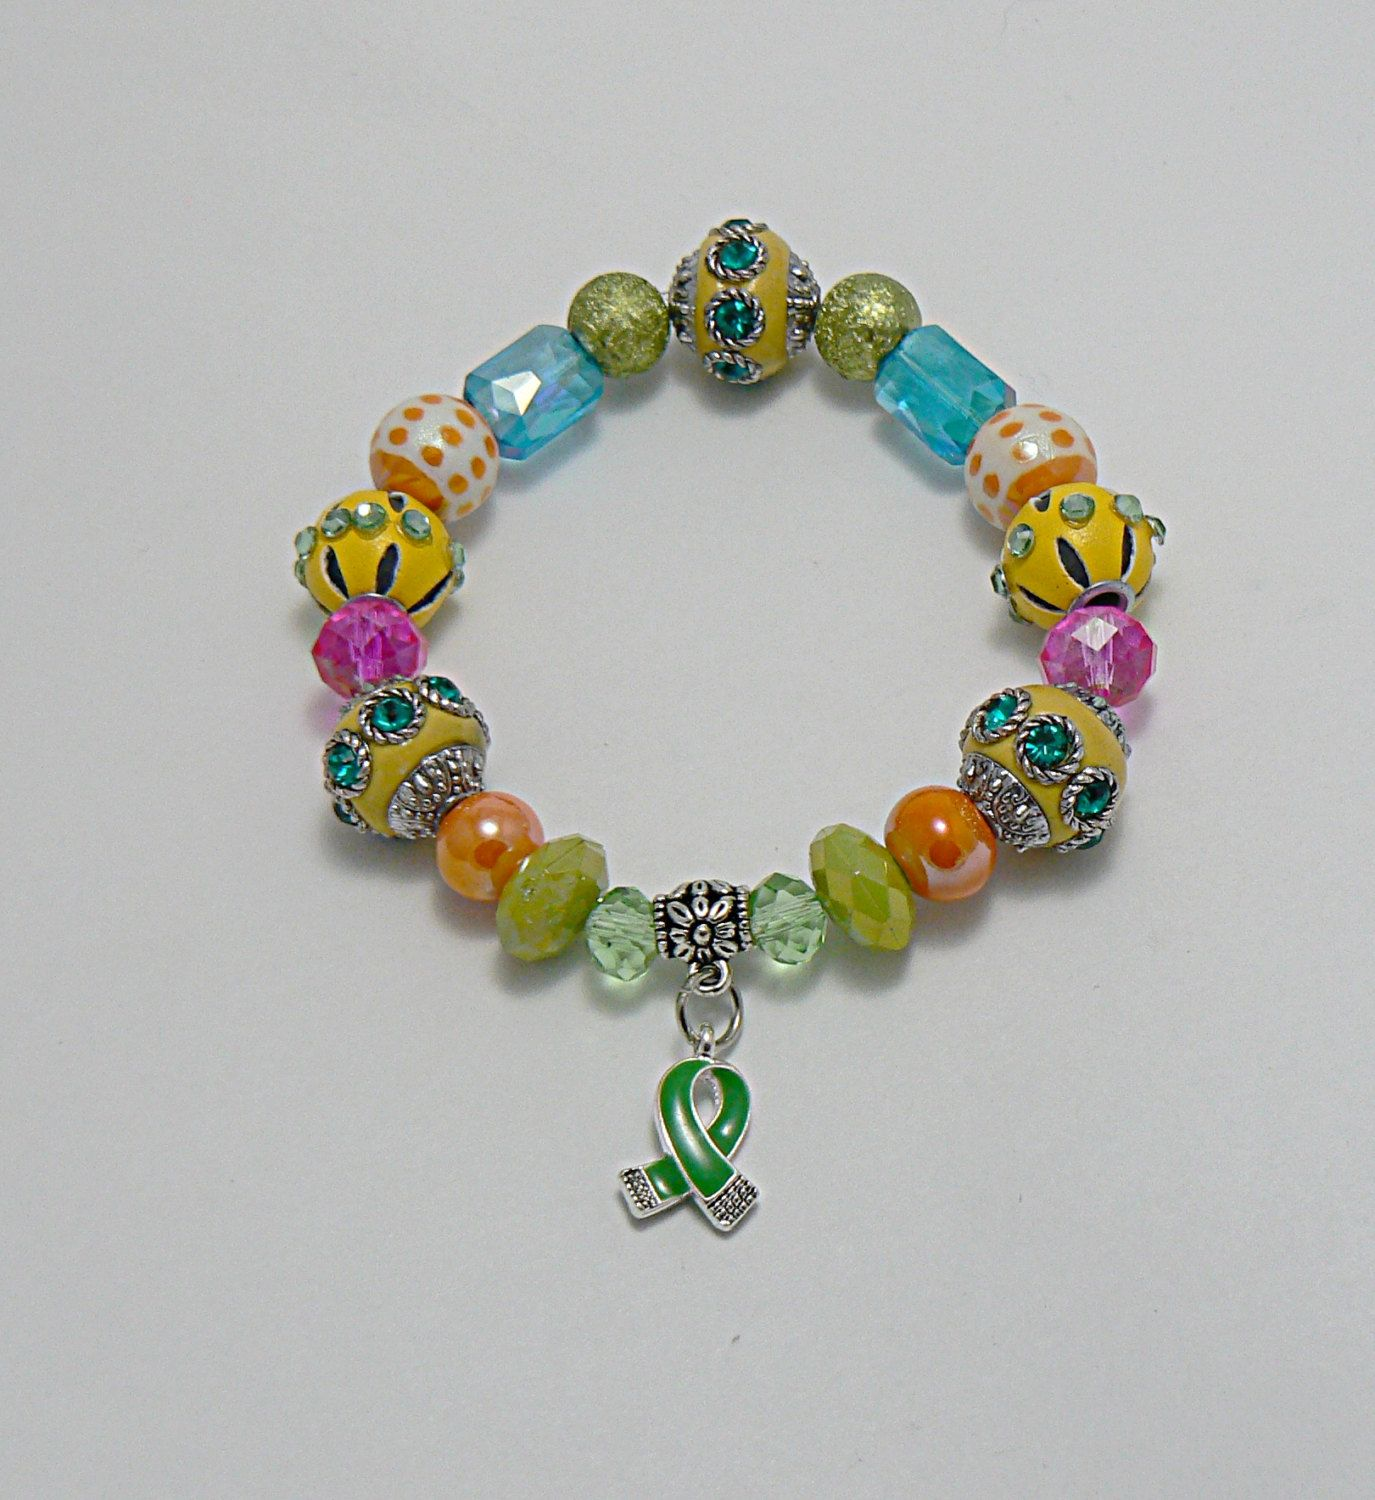 ribbon by suicide the mental vector health bracelet social about raise wearing awareness of prevention luxury month